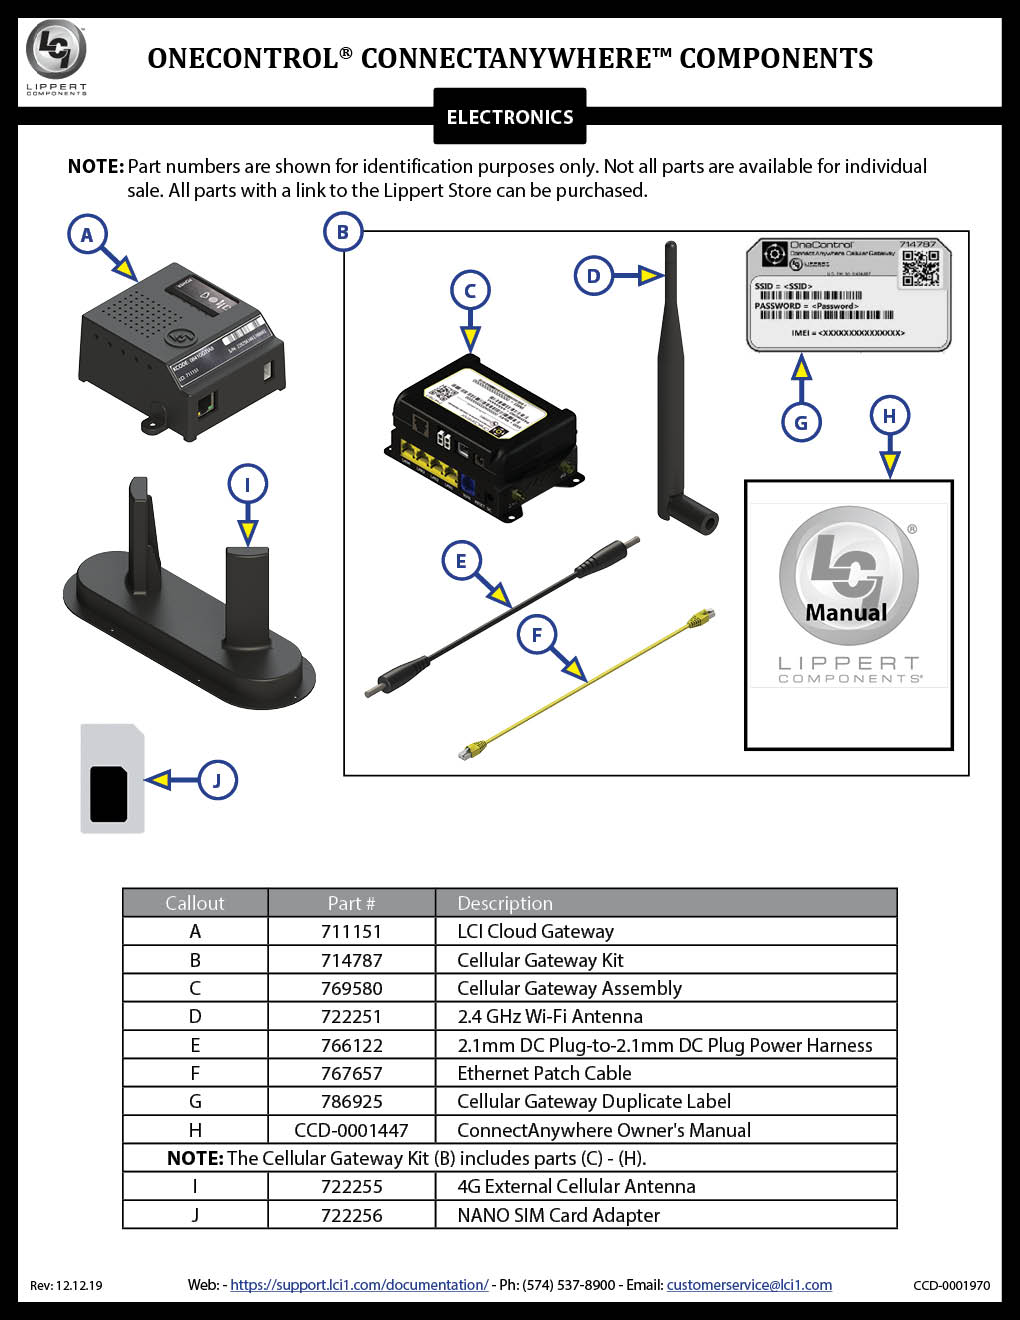 OneControl® ConnectAnywhere™ Components